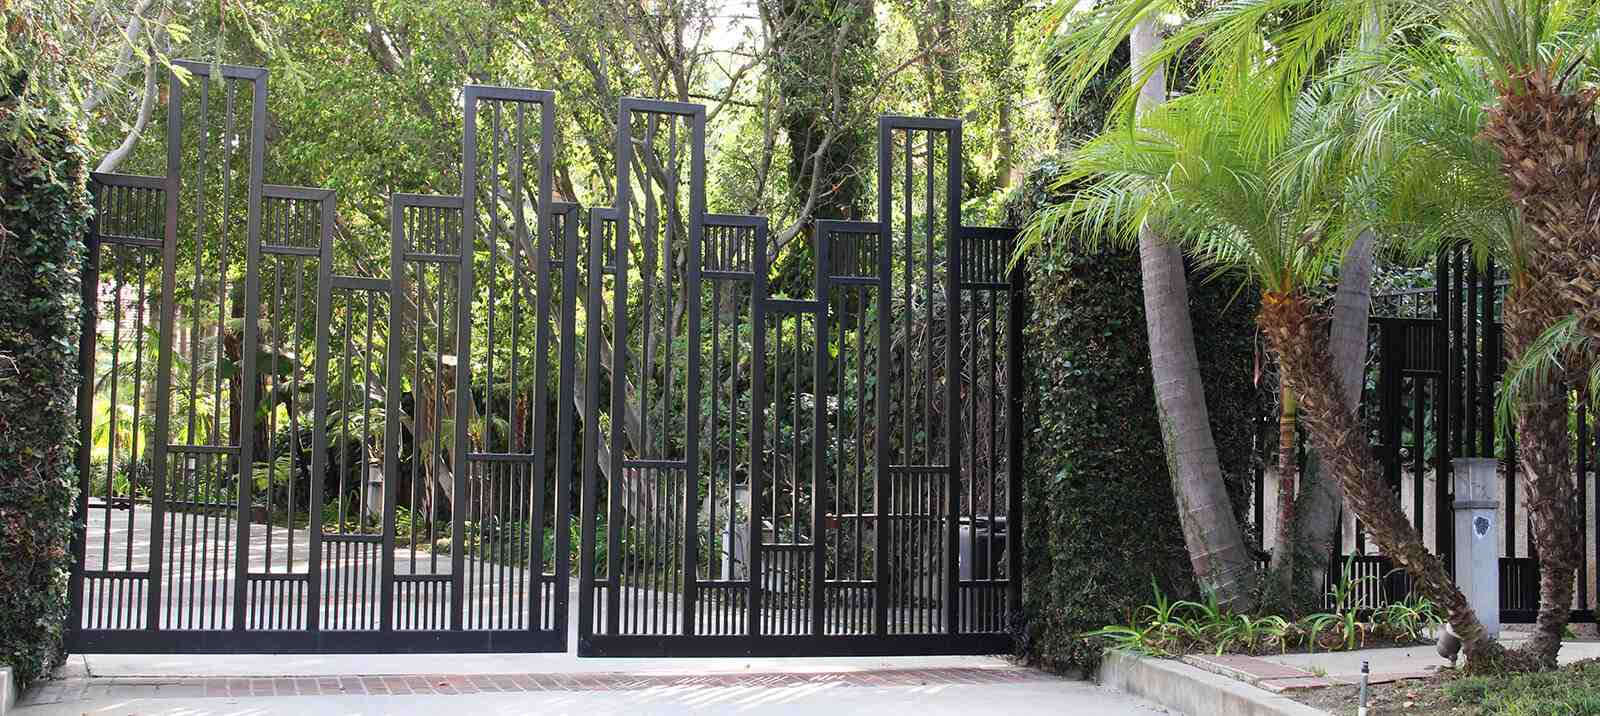 Contemporary geometric design bifold steel gate